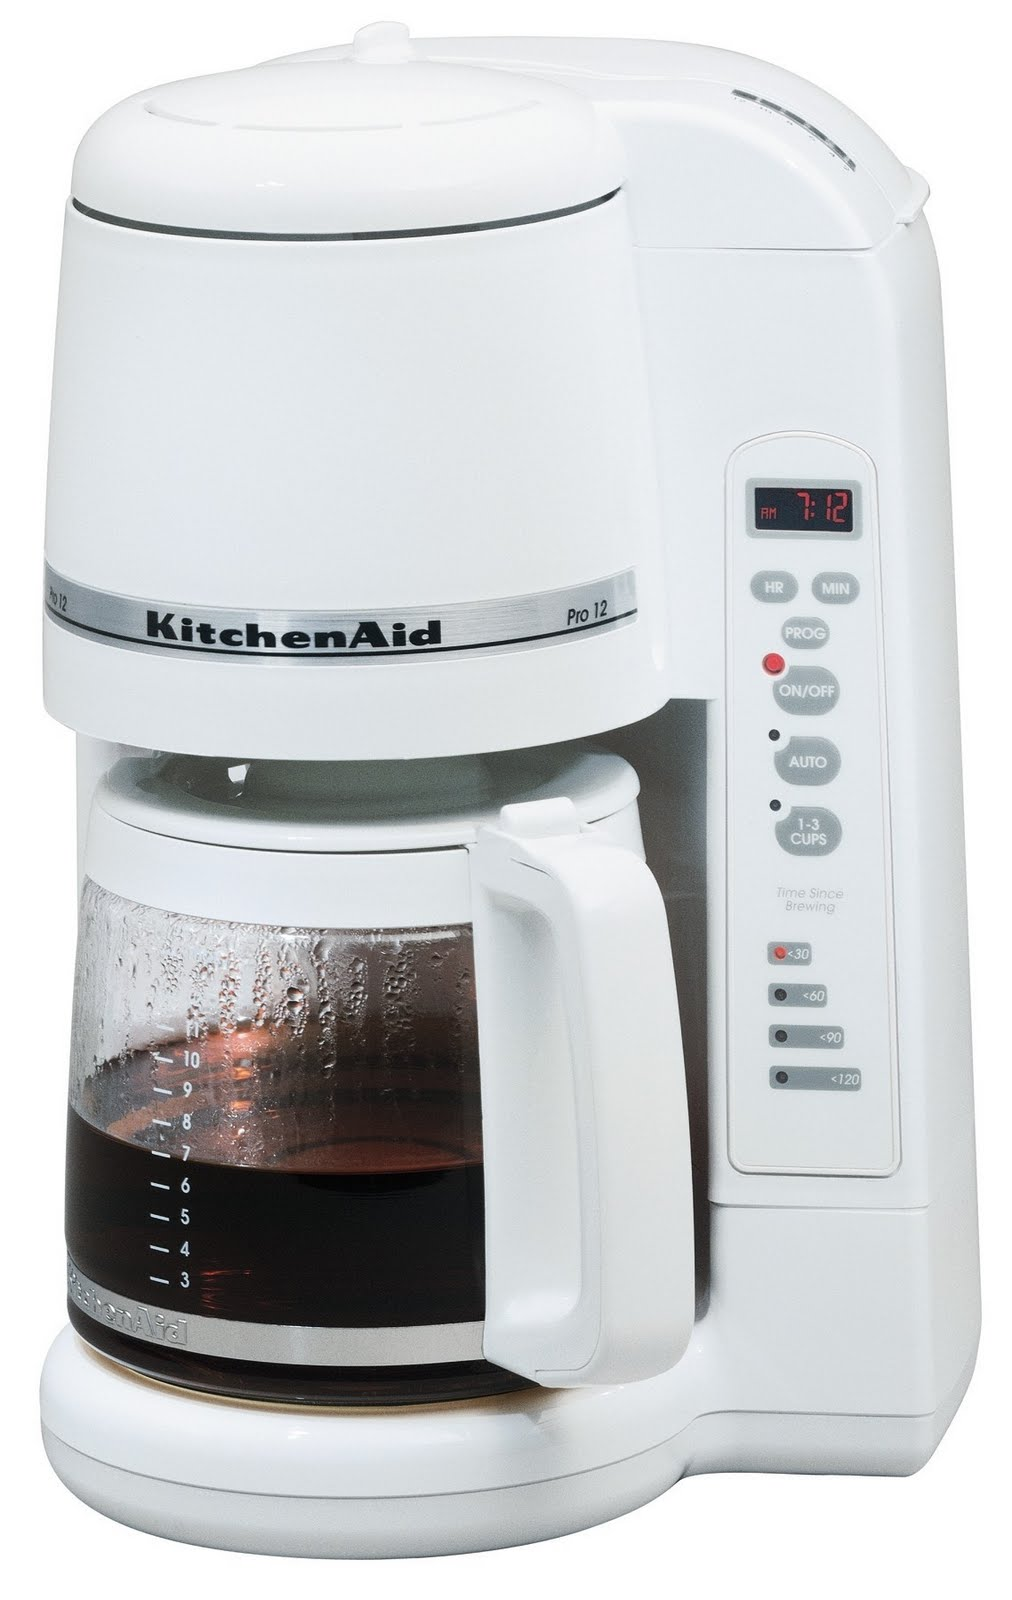 Kitchenaid Coffee Maker New : Coffee maker kitchenaid Kitchen ideas